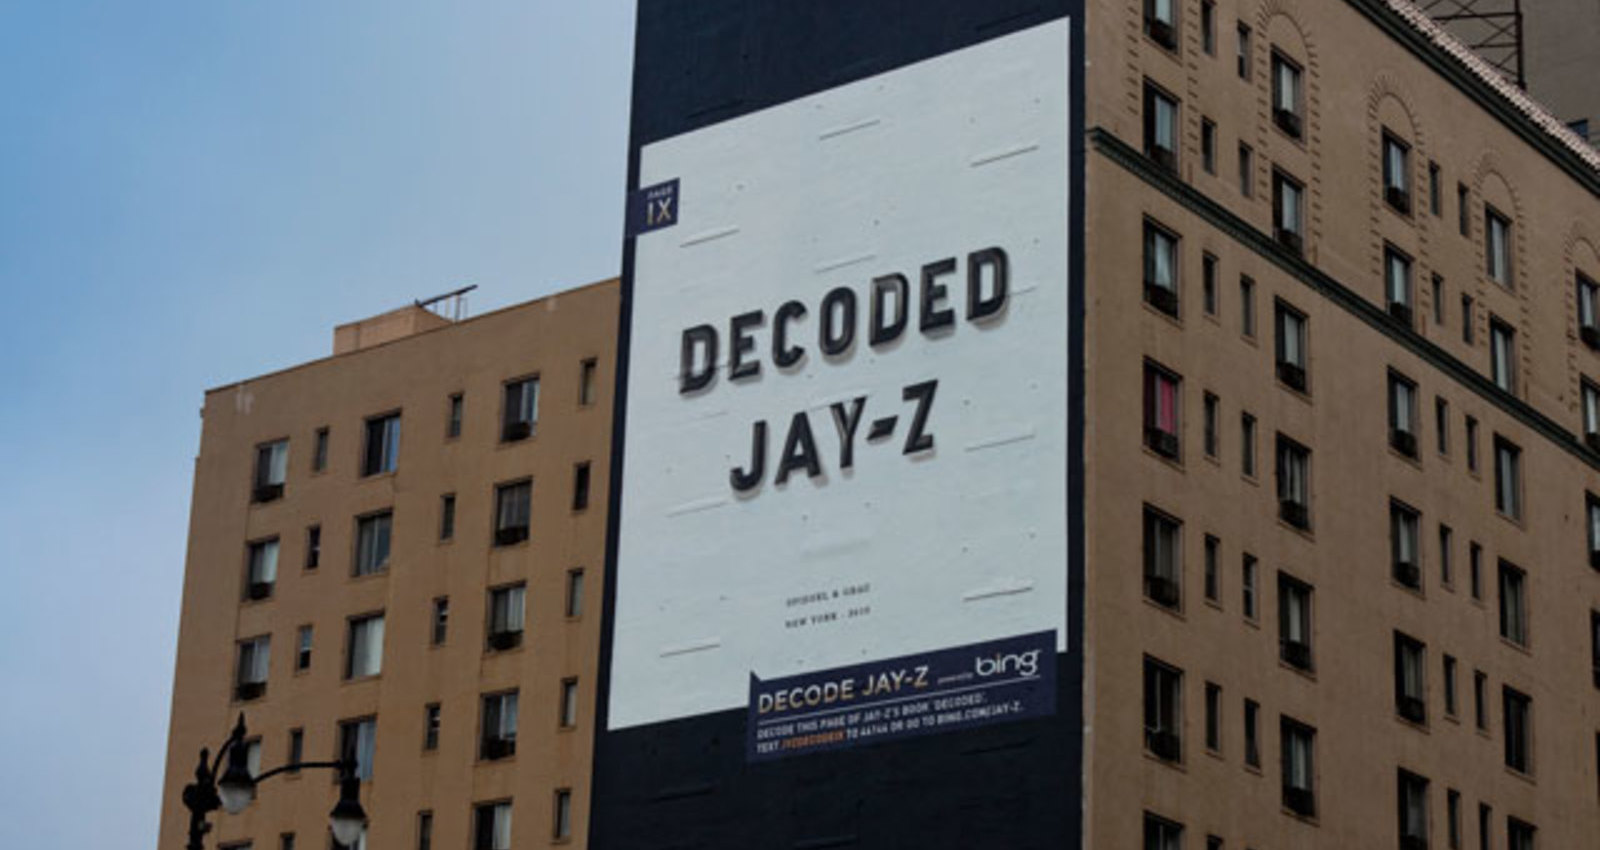 Decode Jay-Z with Bing